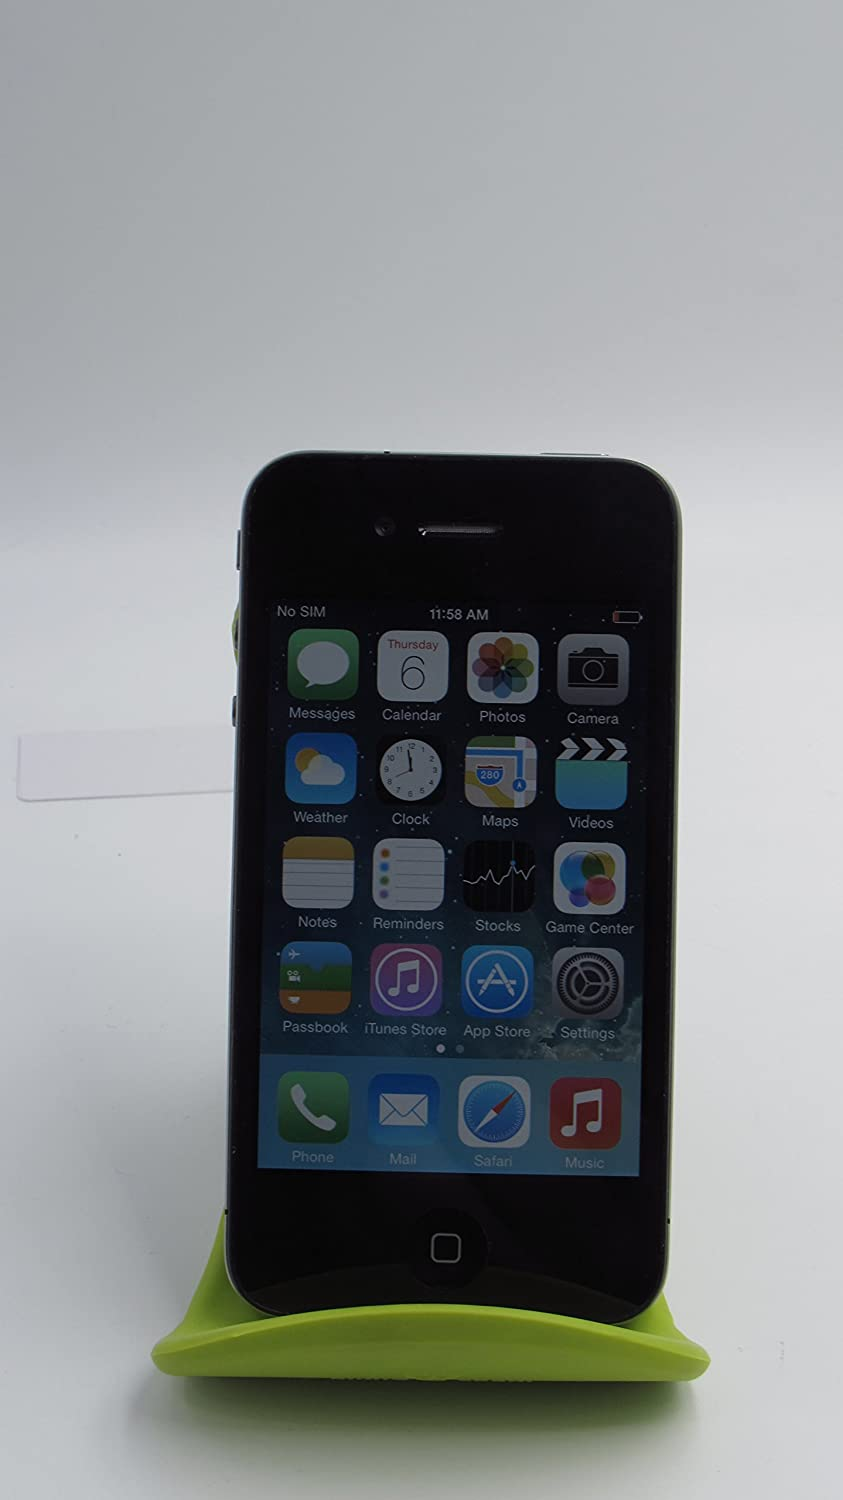 Apple Iphone 4 32 Gb Unlocked Black Cell Phones 5s 32gb Gold Distributor Accessories